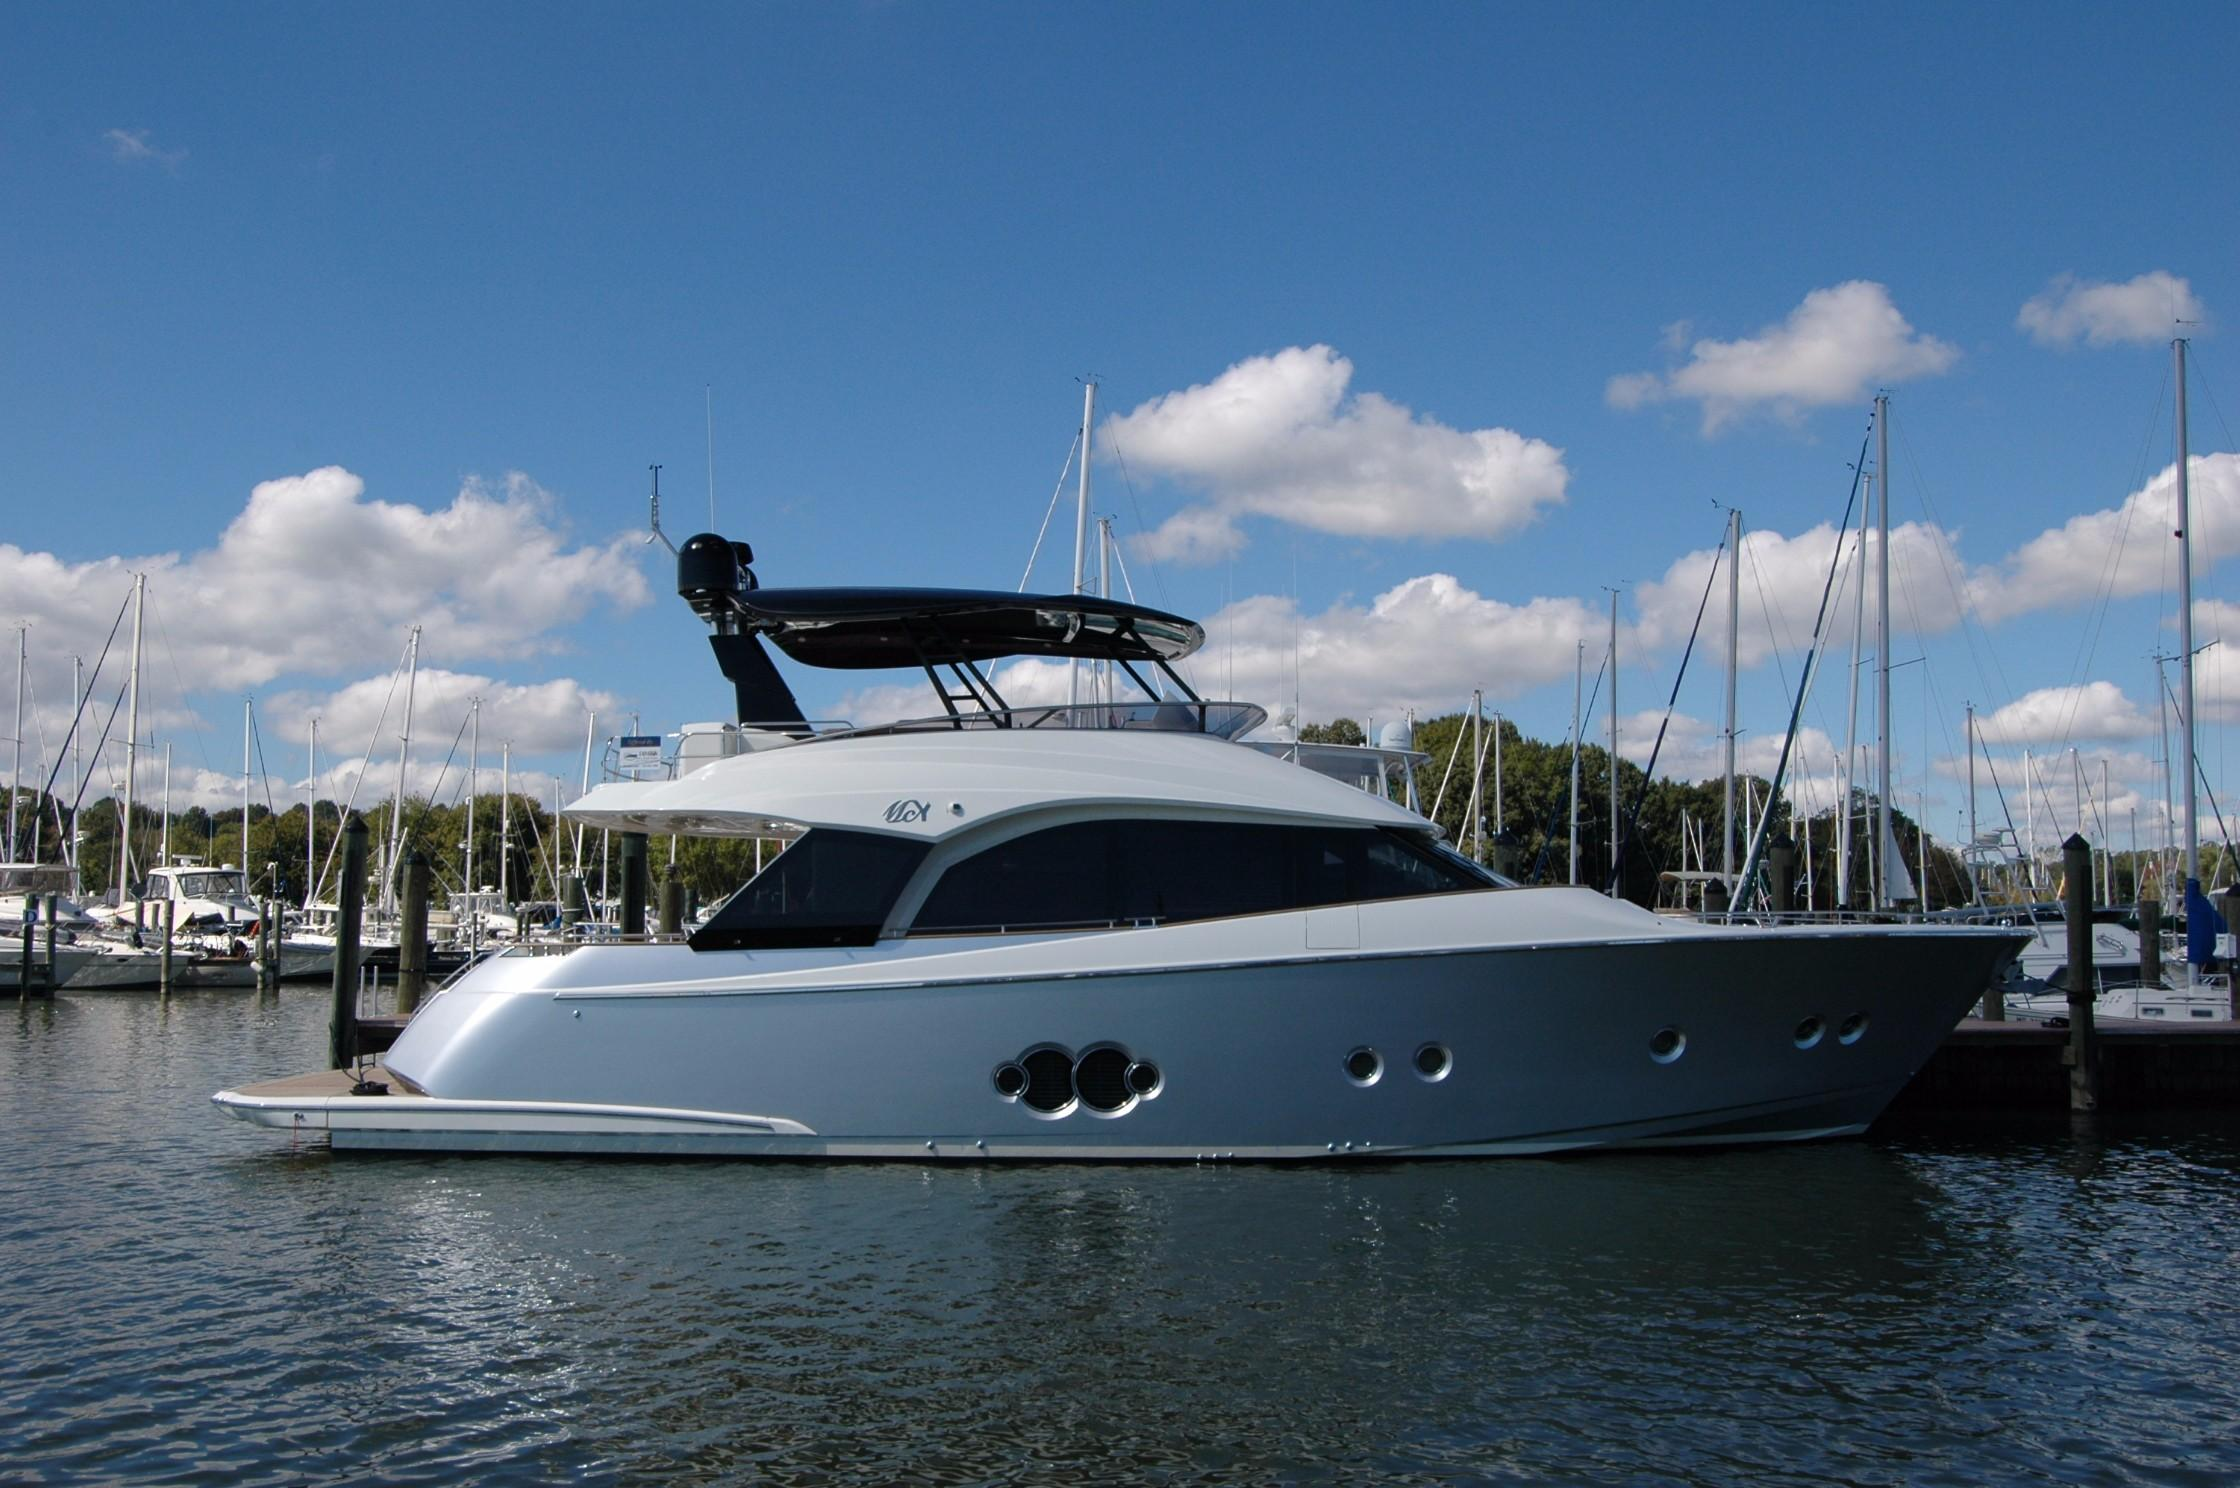 2018 Monte Carlo Yachts Mcy 65 Yacht for Sale in Glen Cove, NY ...